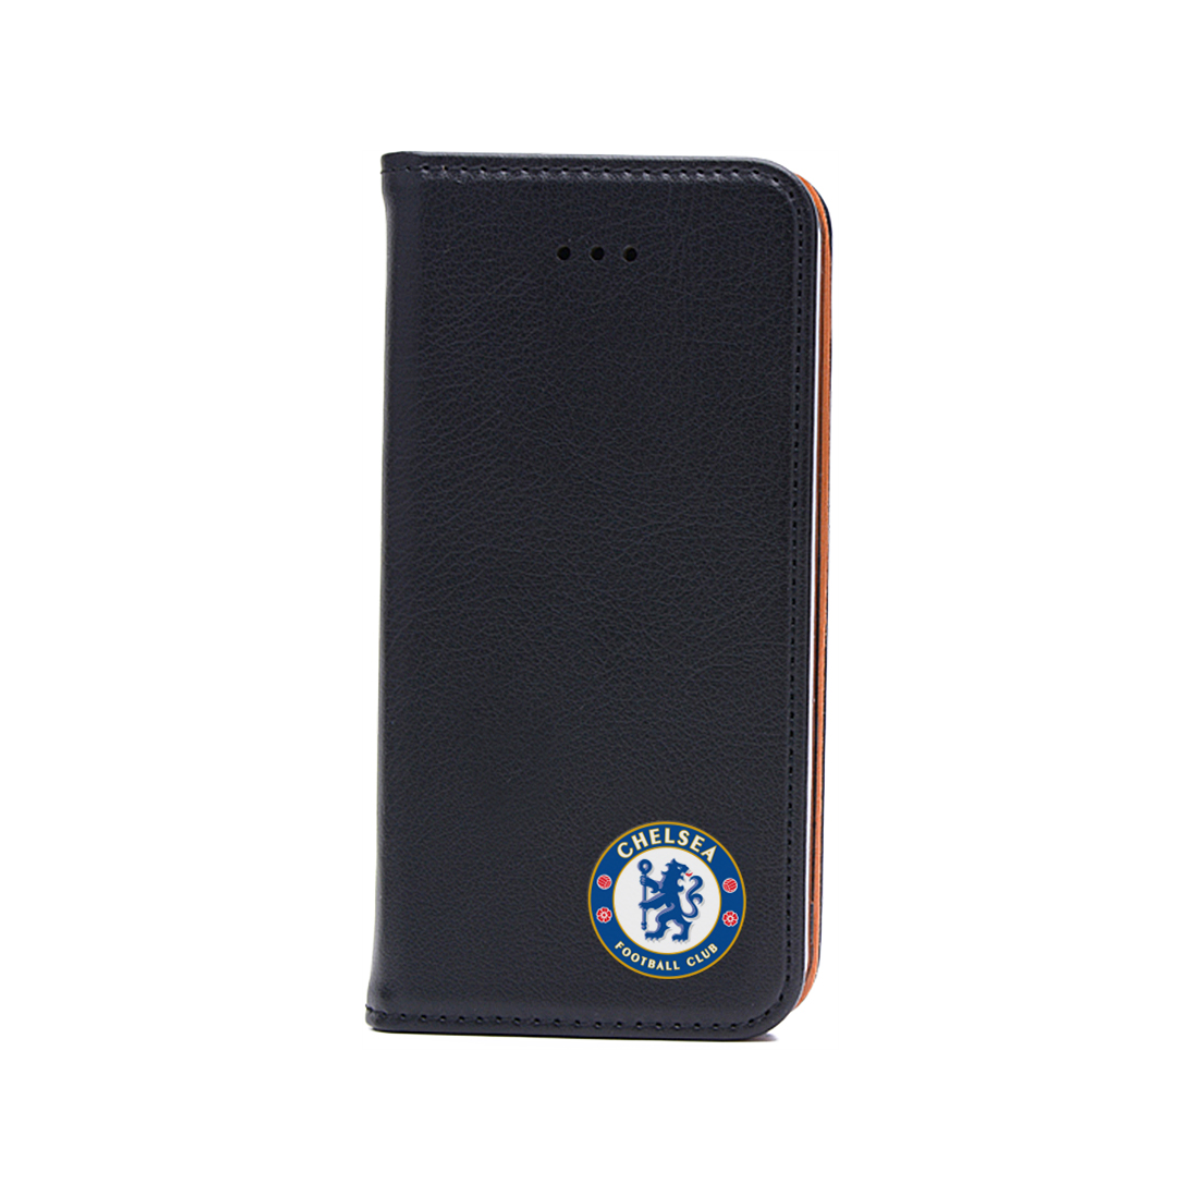 InToro Chelsea iPhone 6 Folio Case